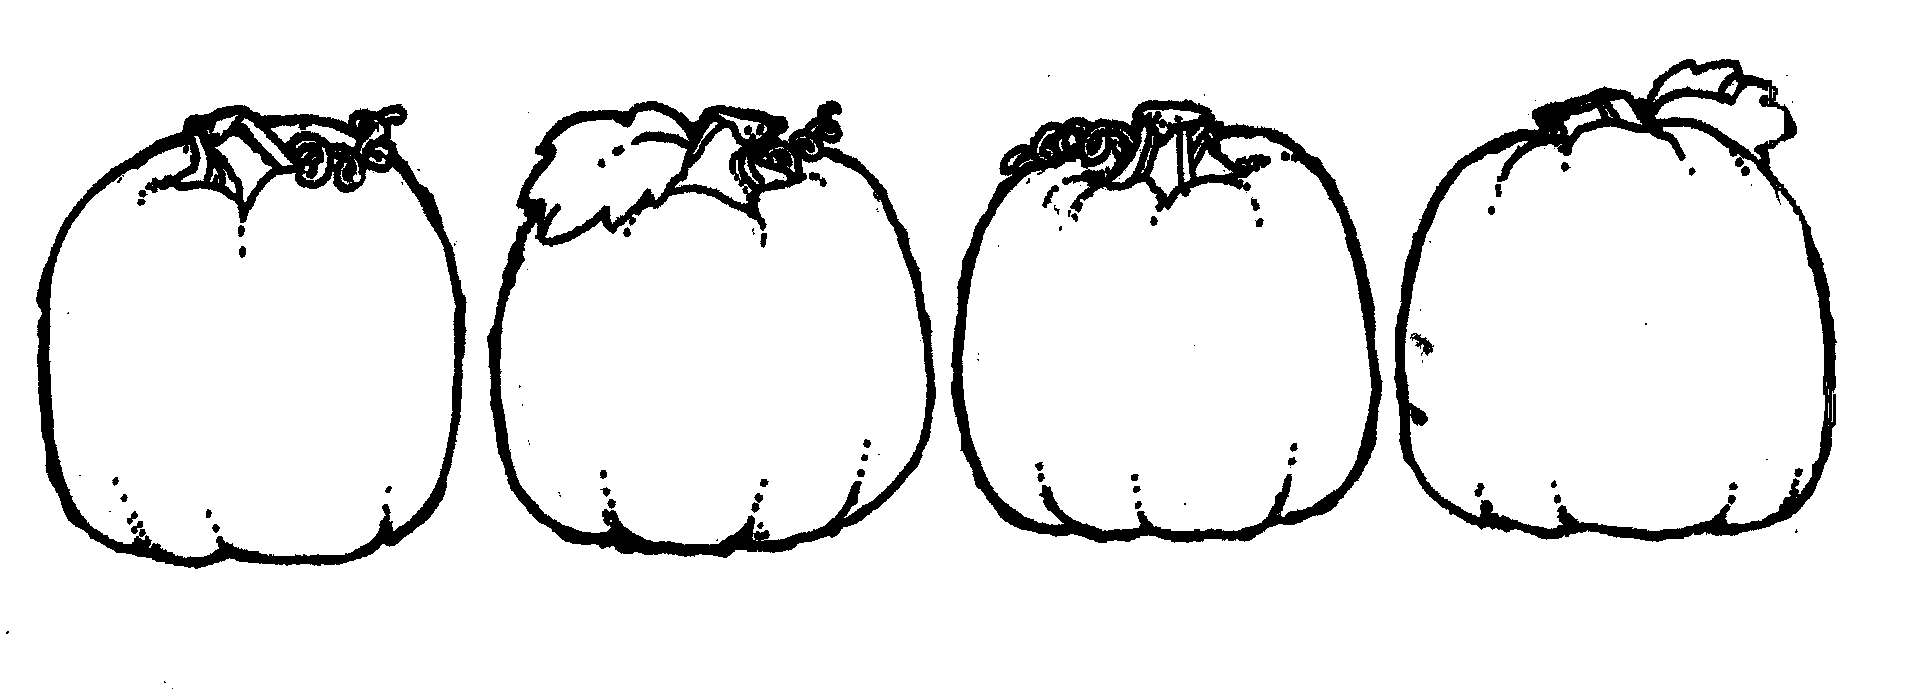 1920x689 Best Pumpkin Clipart Black And White